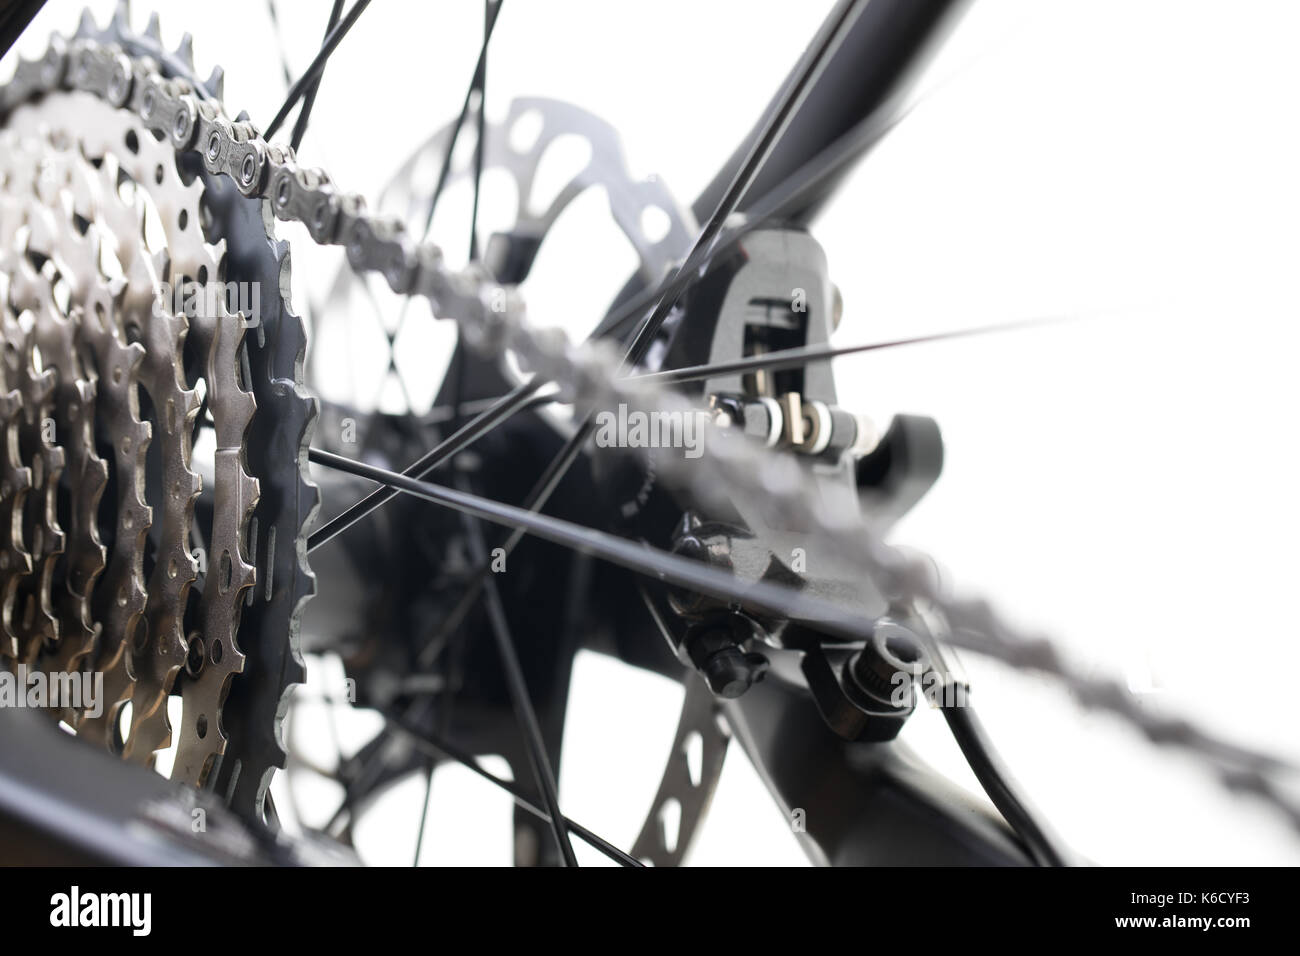 Modern MTB race mountain bike isolated on white background in a studio - Stock Image